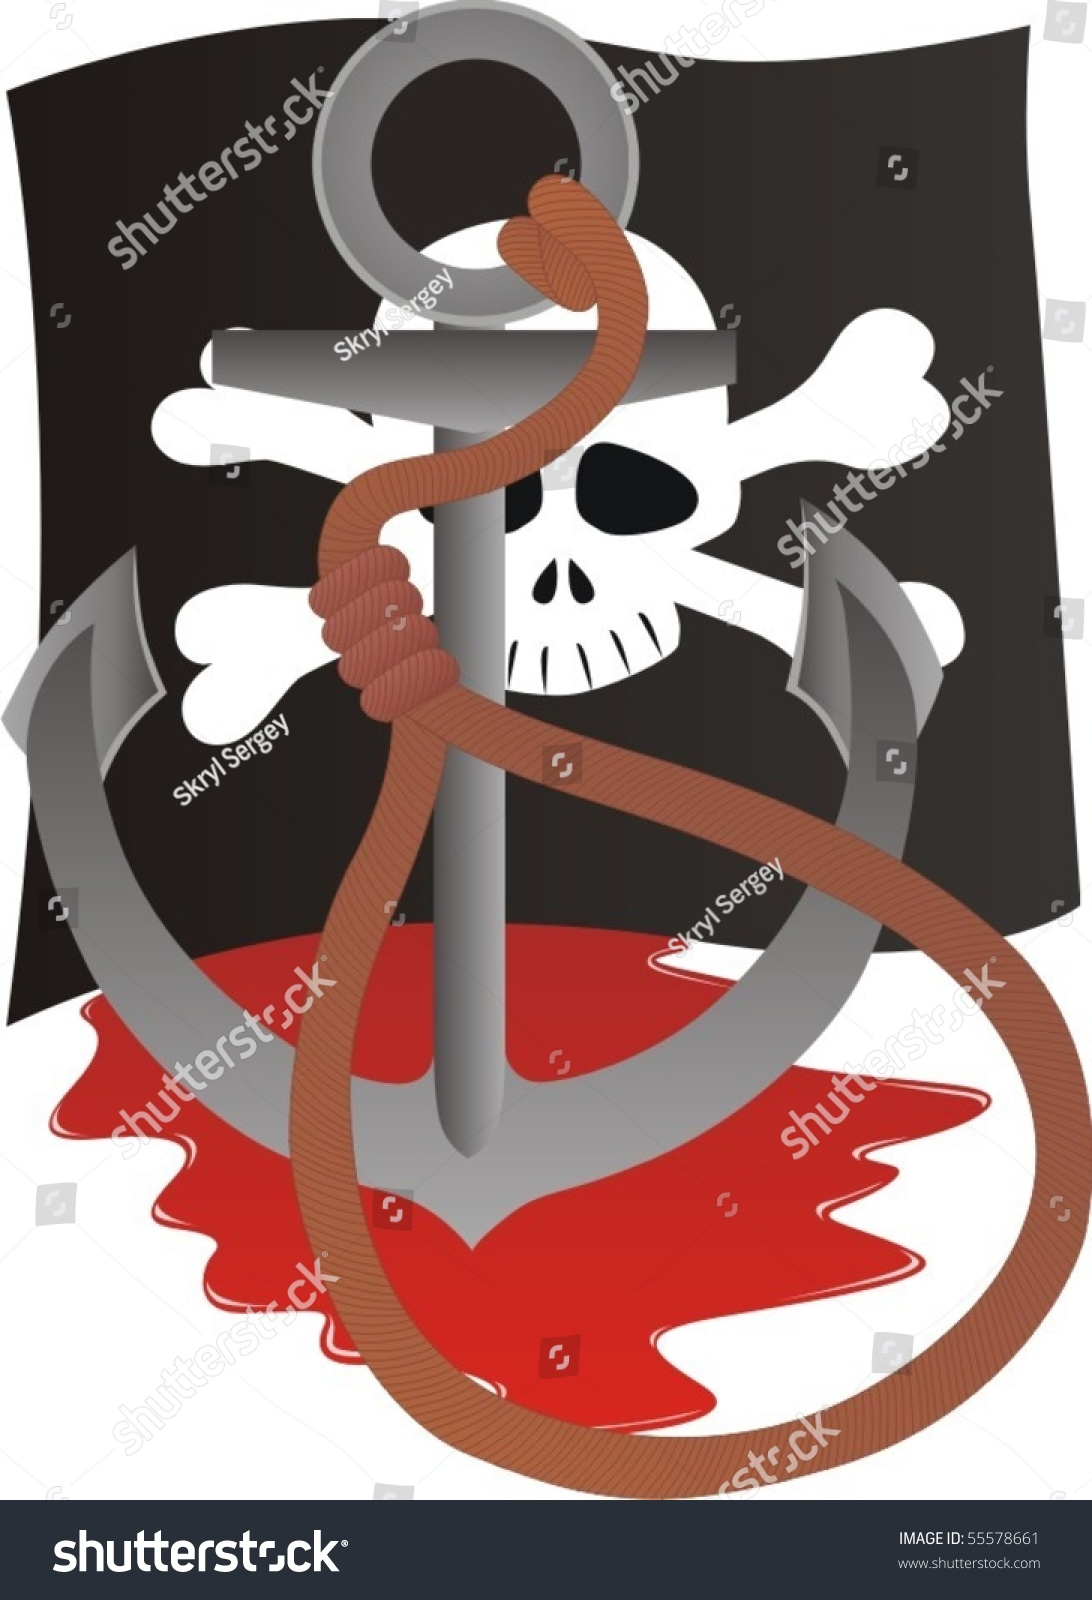 Pirate Flag Depicting Pirate Symbols Anchor Stock Vector Royalty